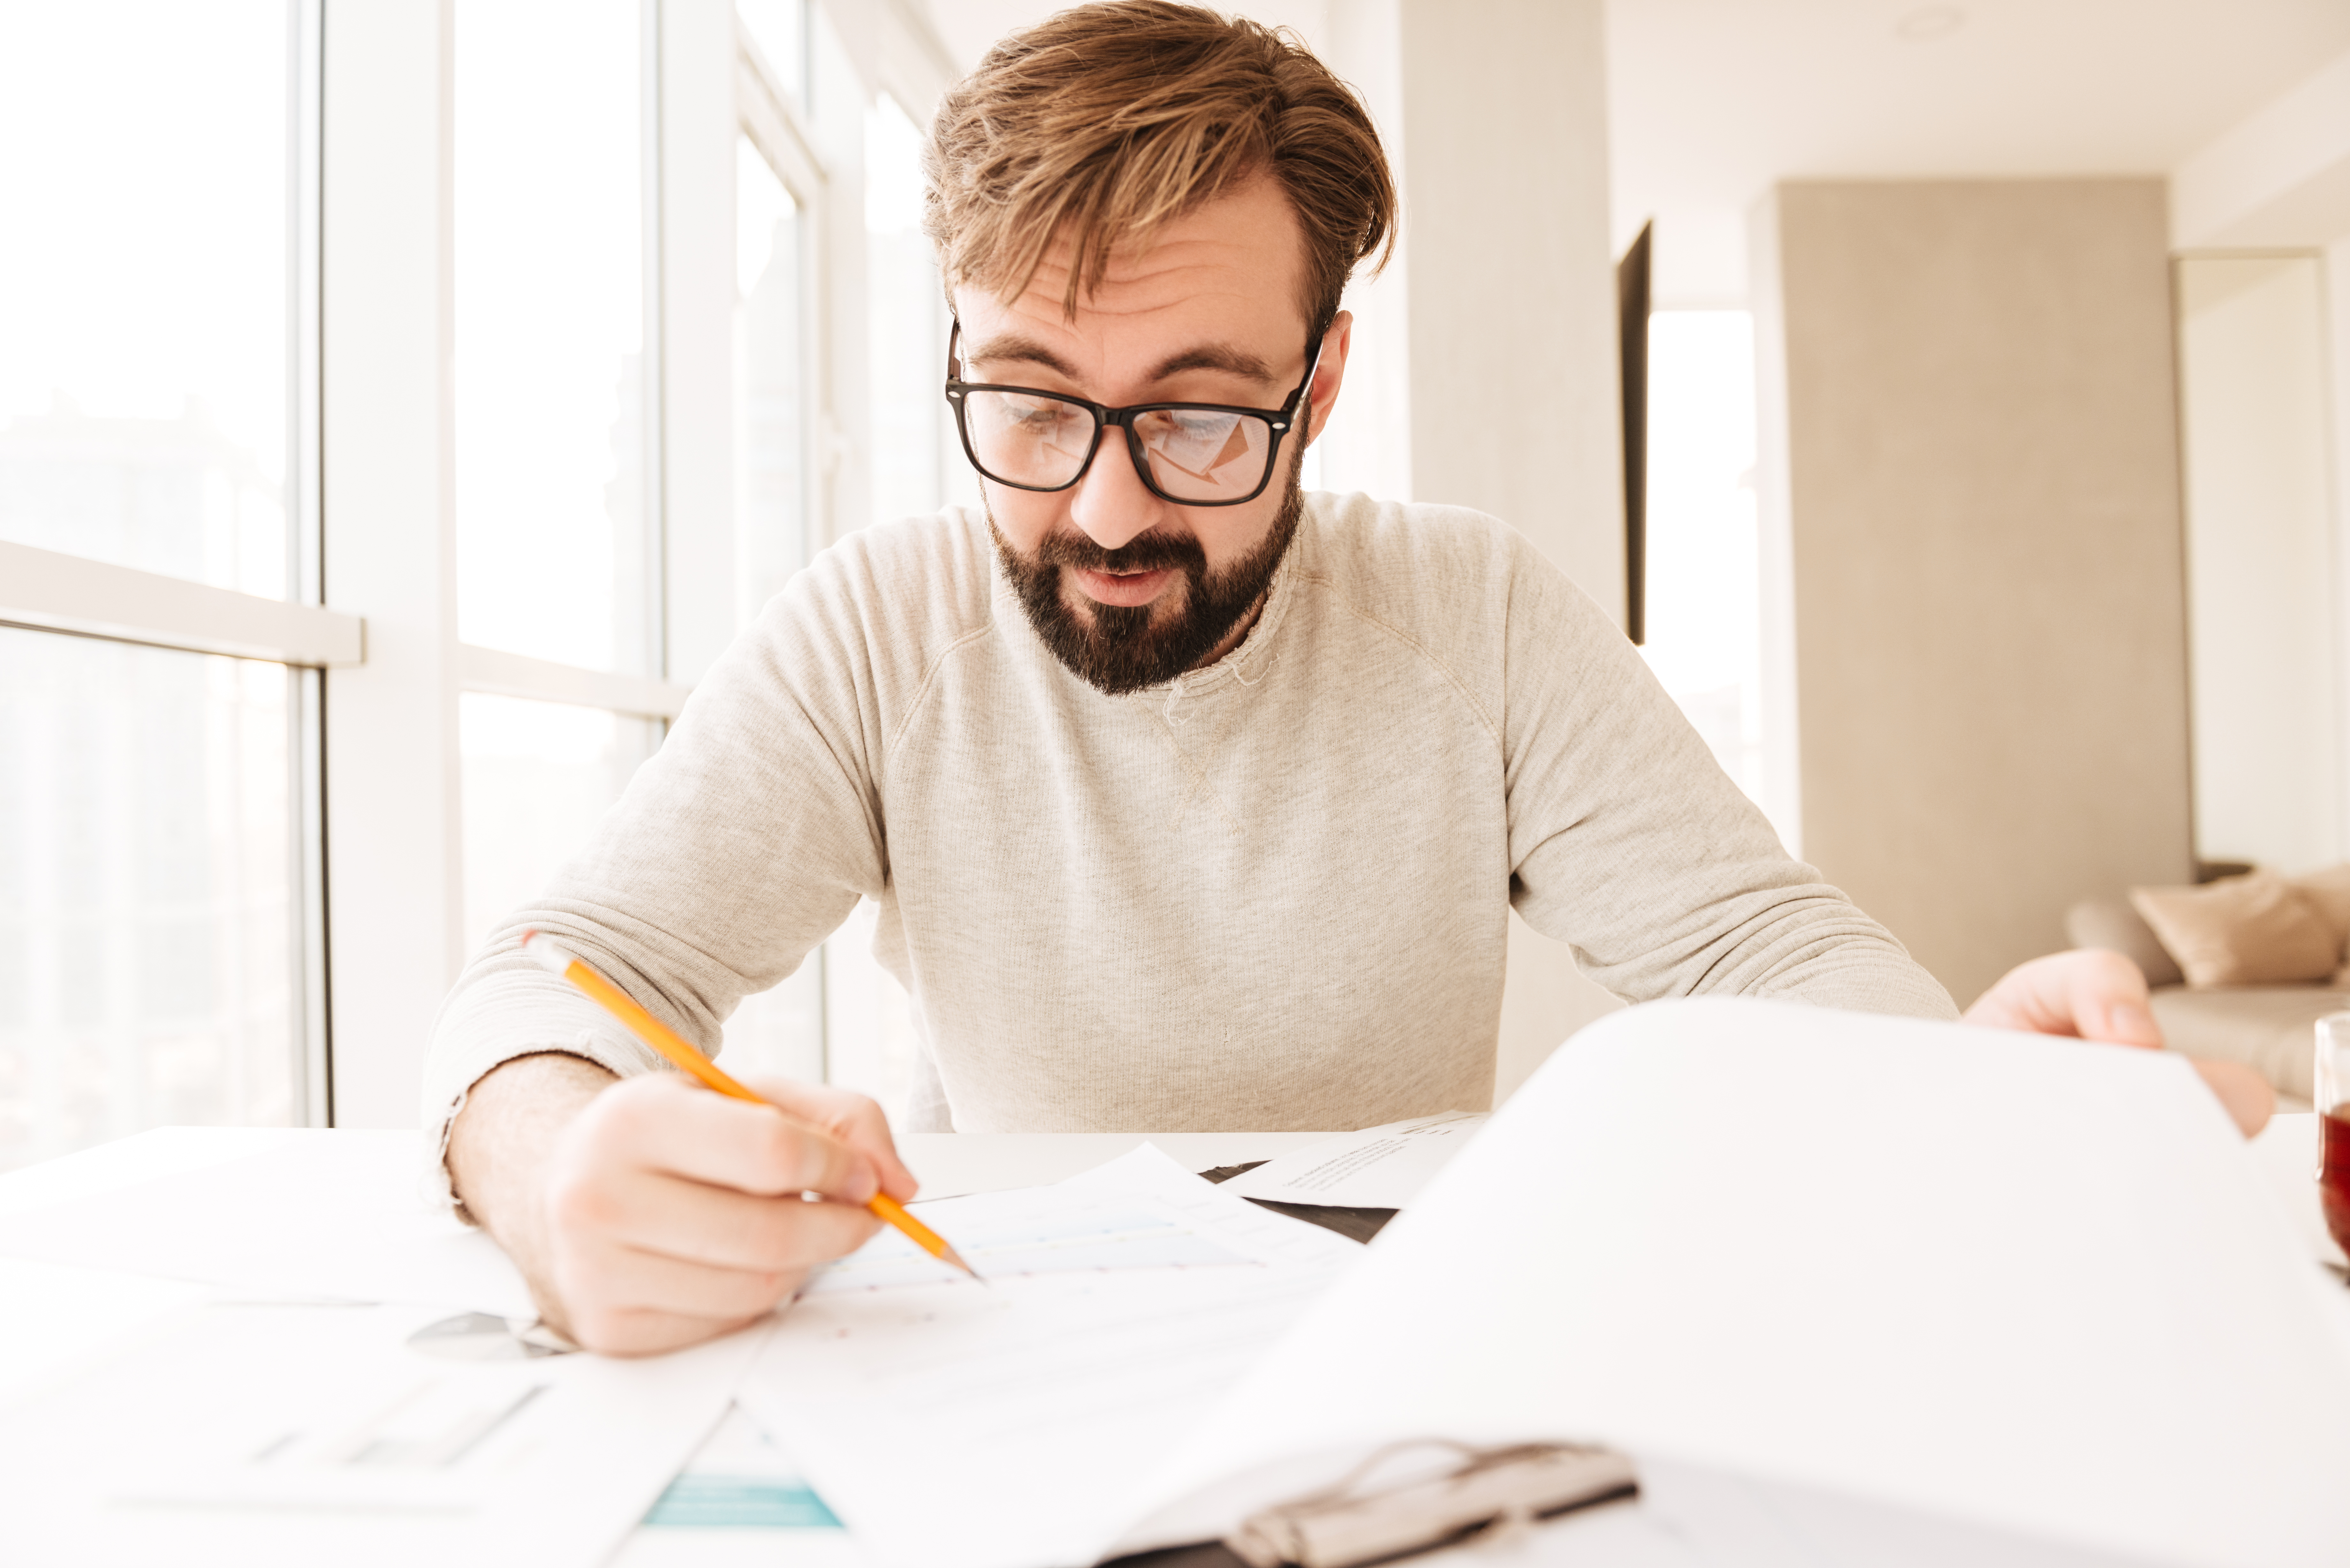 portrait-of-a-busy-man-working-with-documents-P8D3UTC